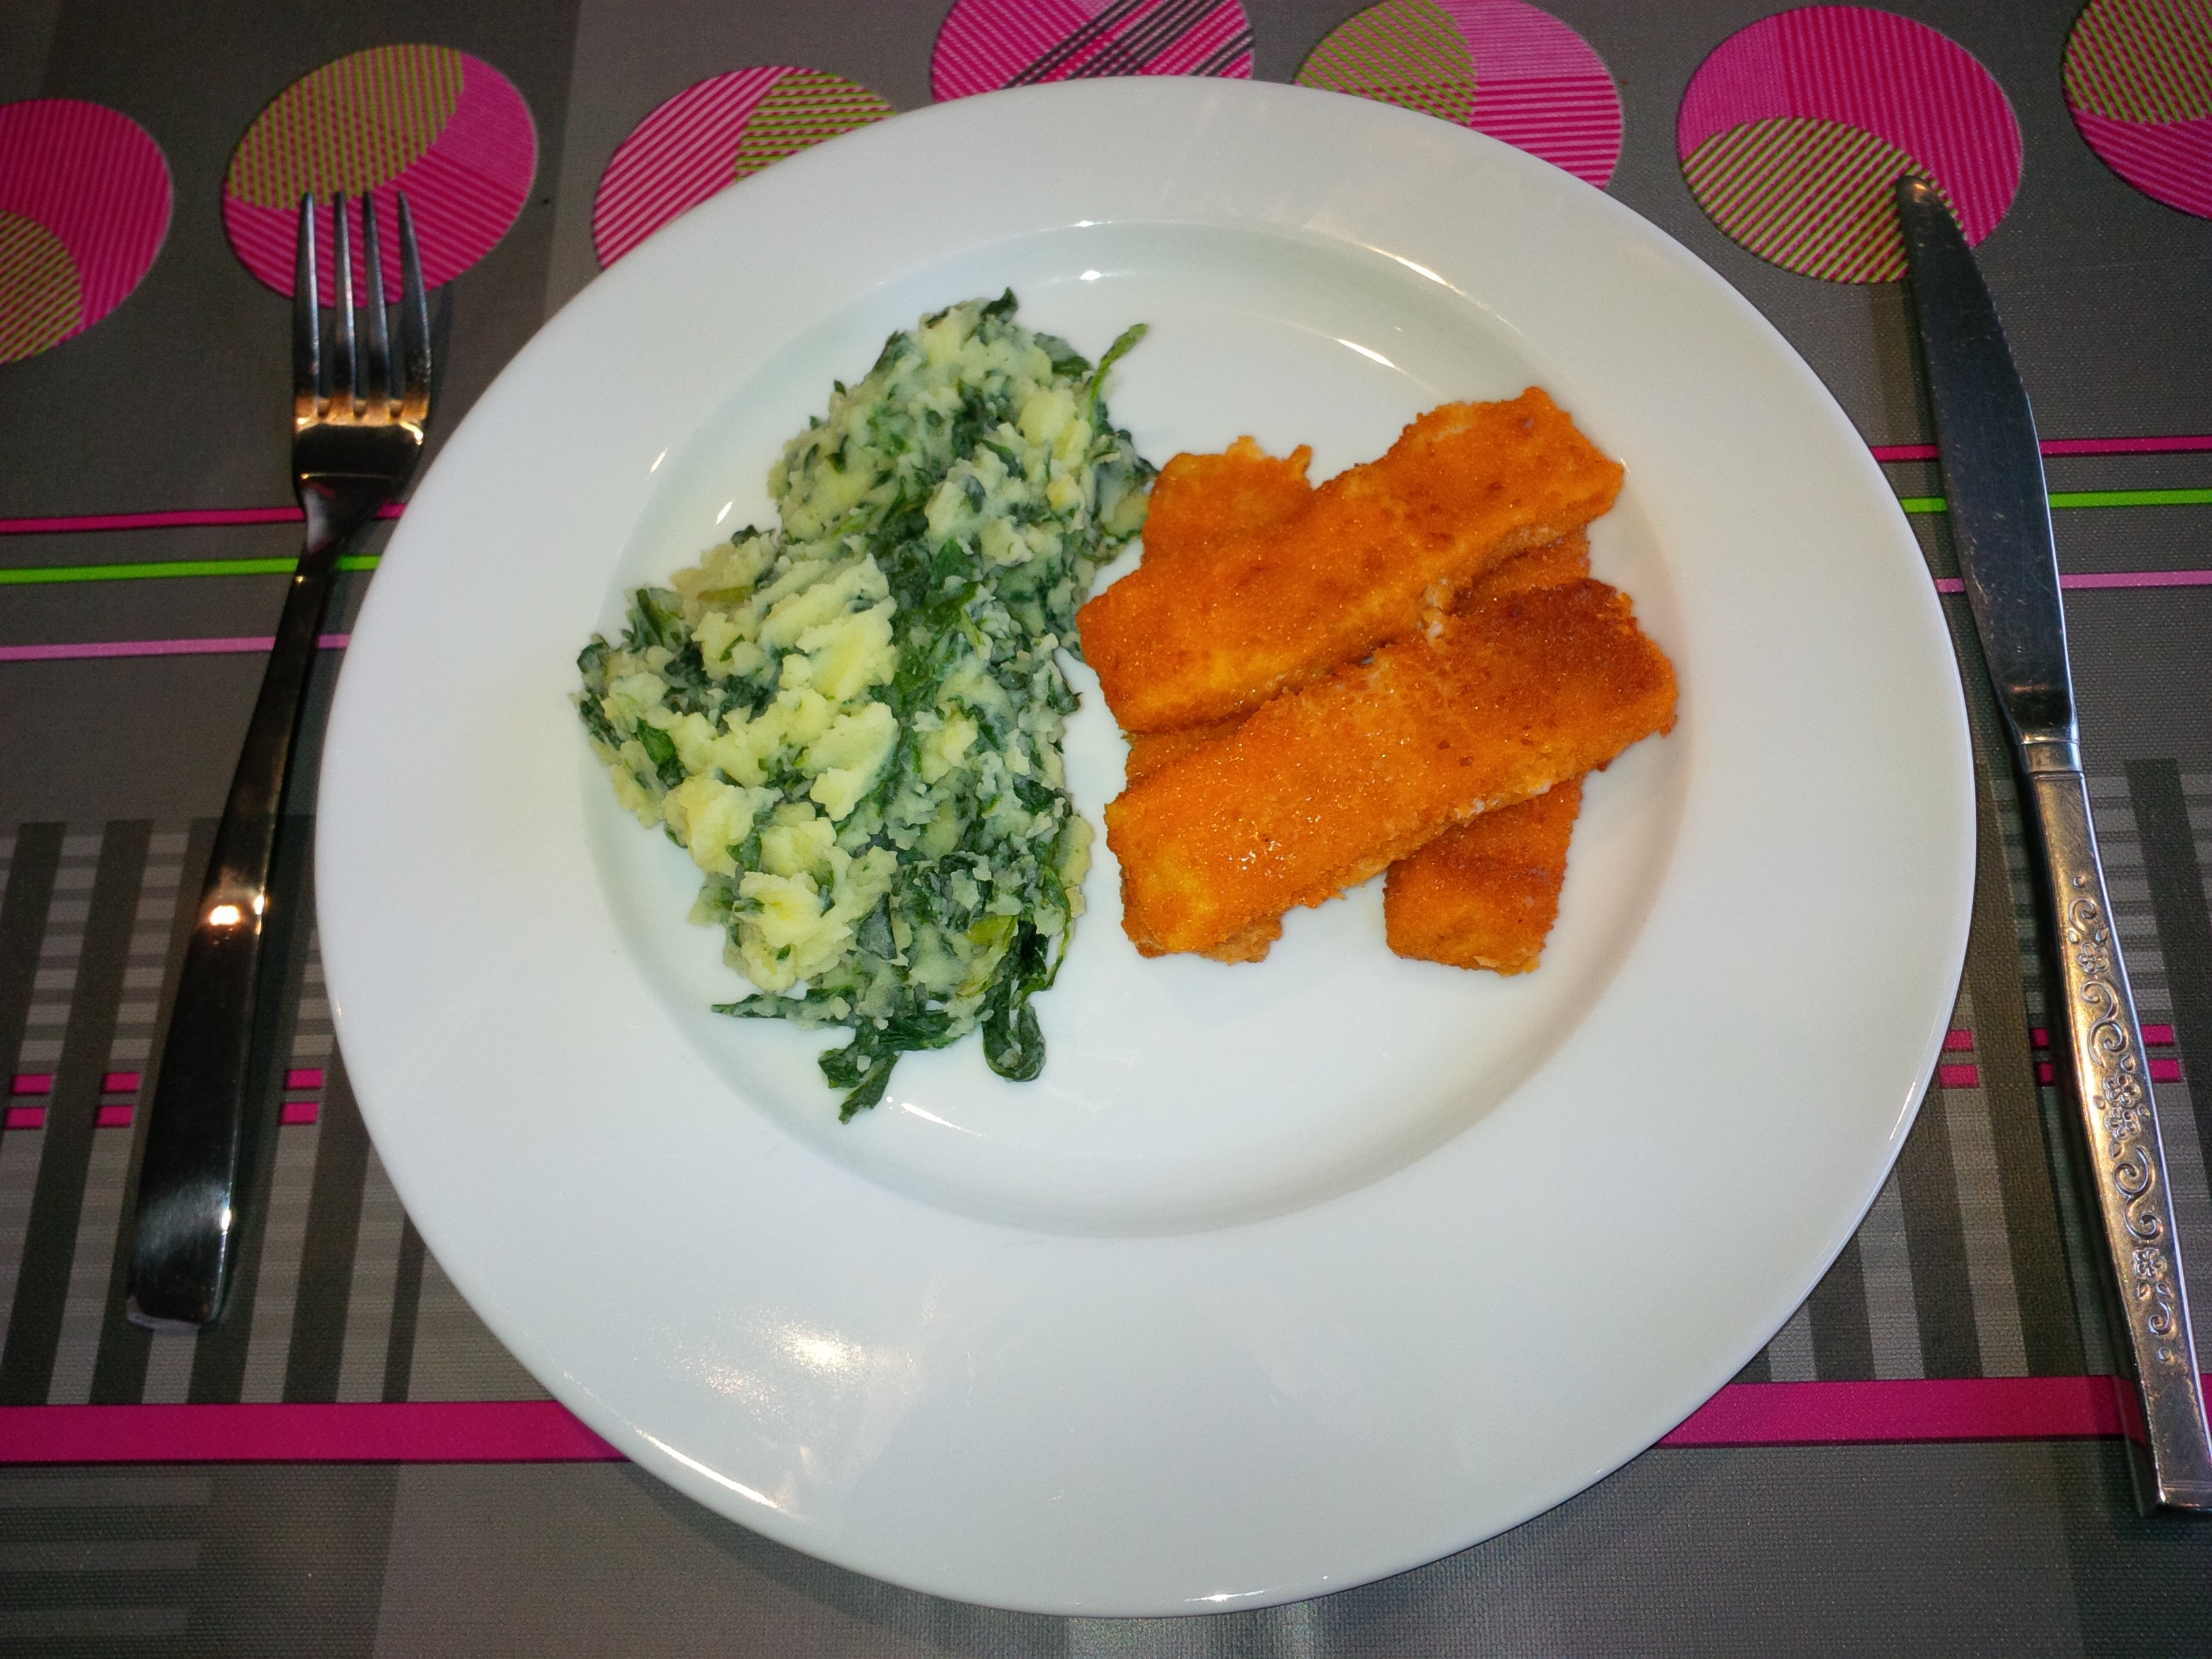 Spinaziepuree met fishsticks